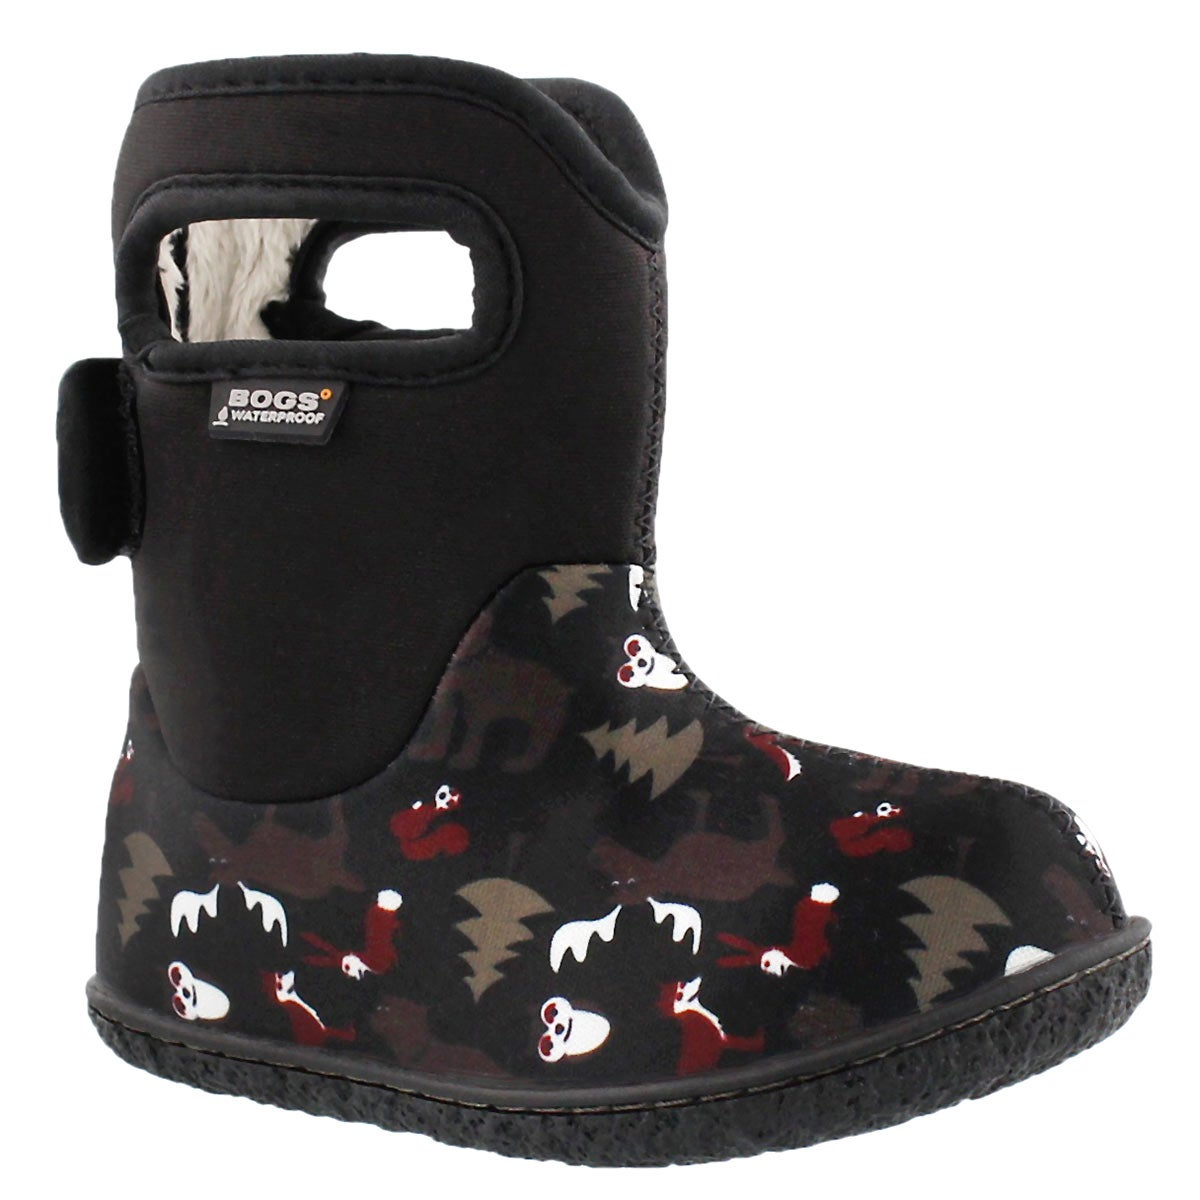 Infs Classic Woodland black wntr boot